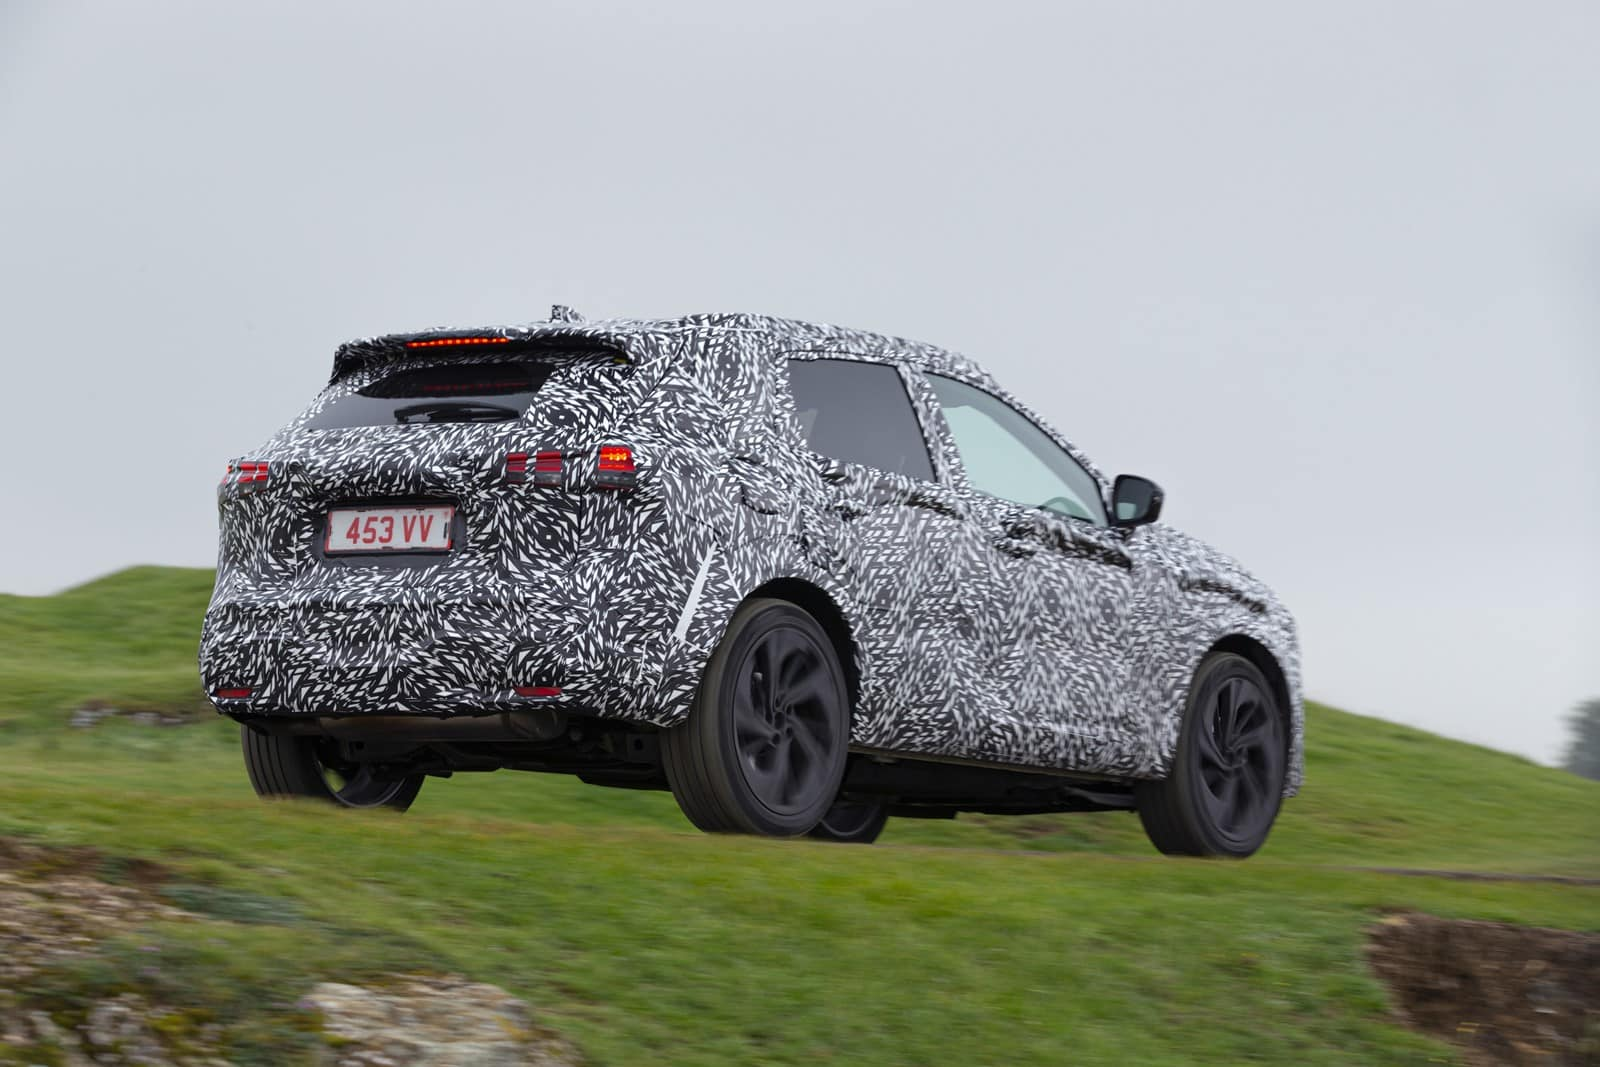 One last look at the 2021 Nissan Qashqai ahead of its debut this week